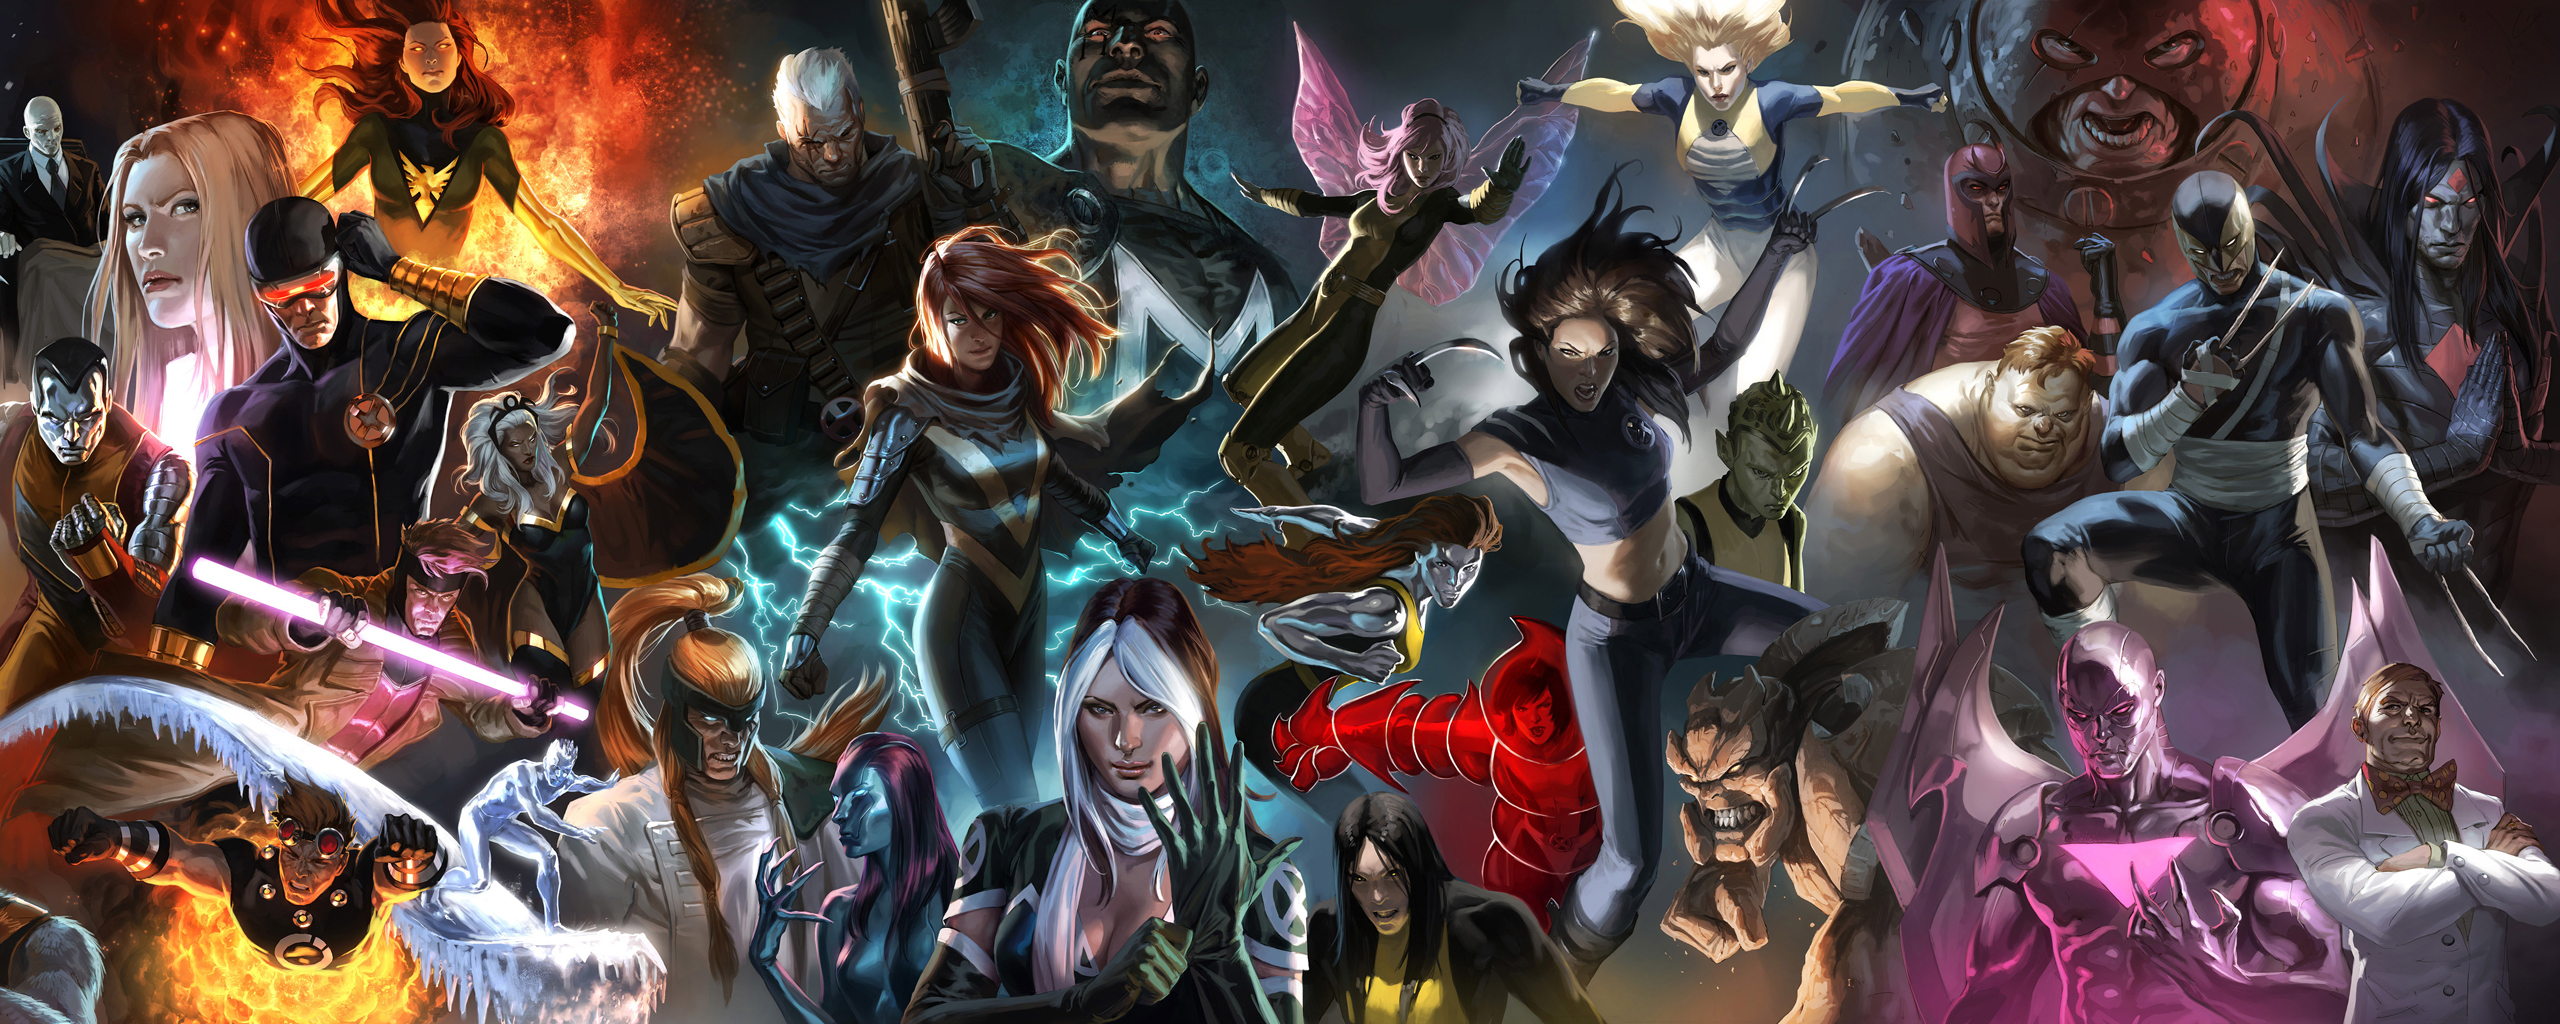 Comics X Men Wallpaper 2560x1024 Comics XMen Phoenix Storm 2560x1024